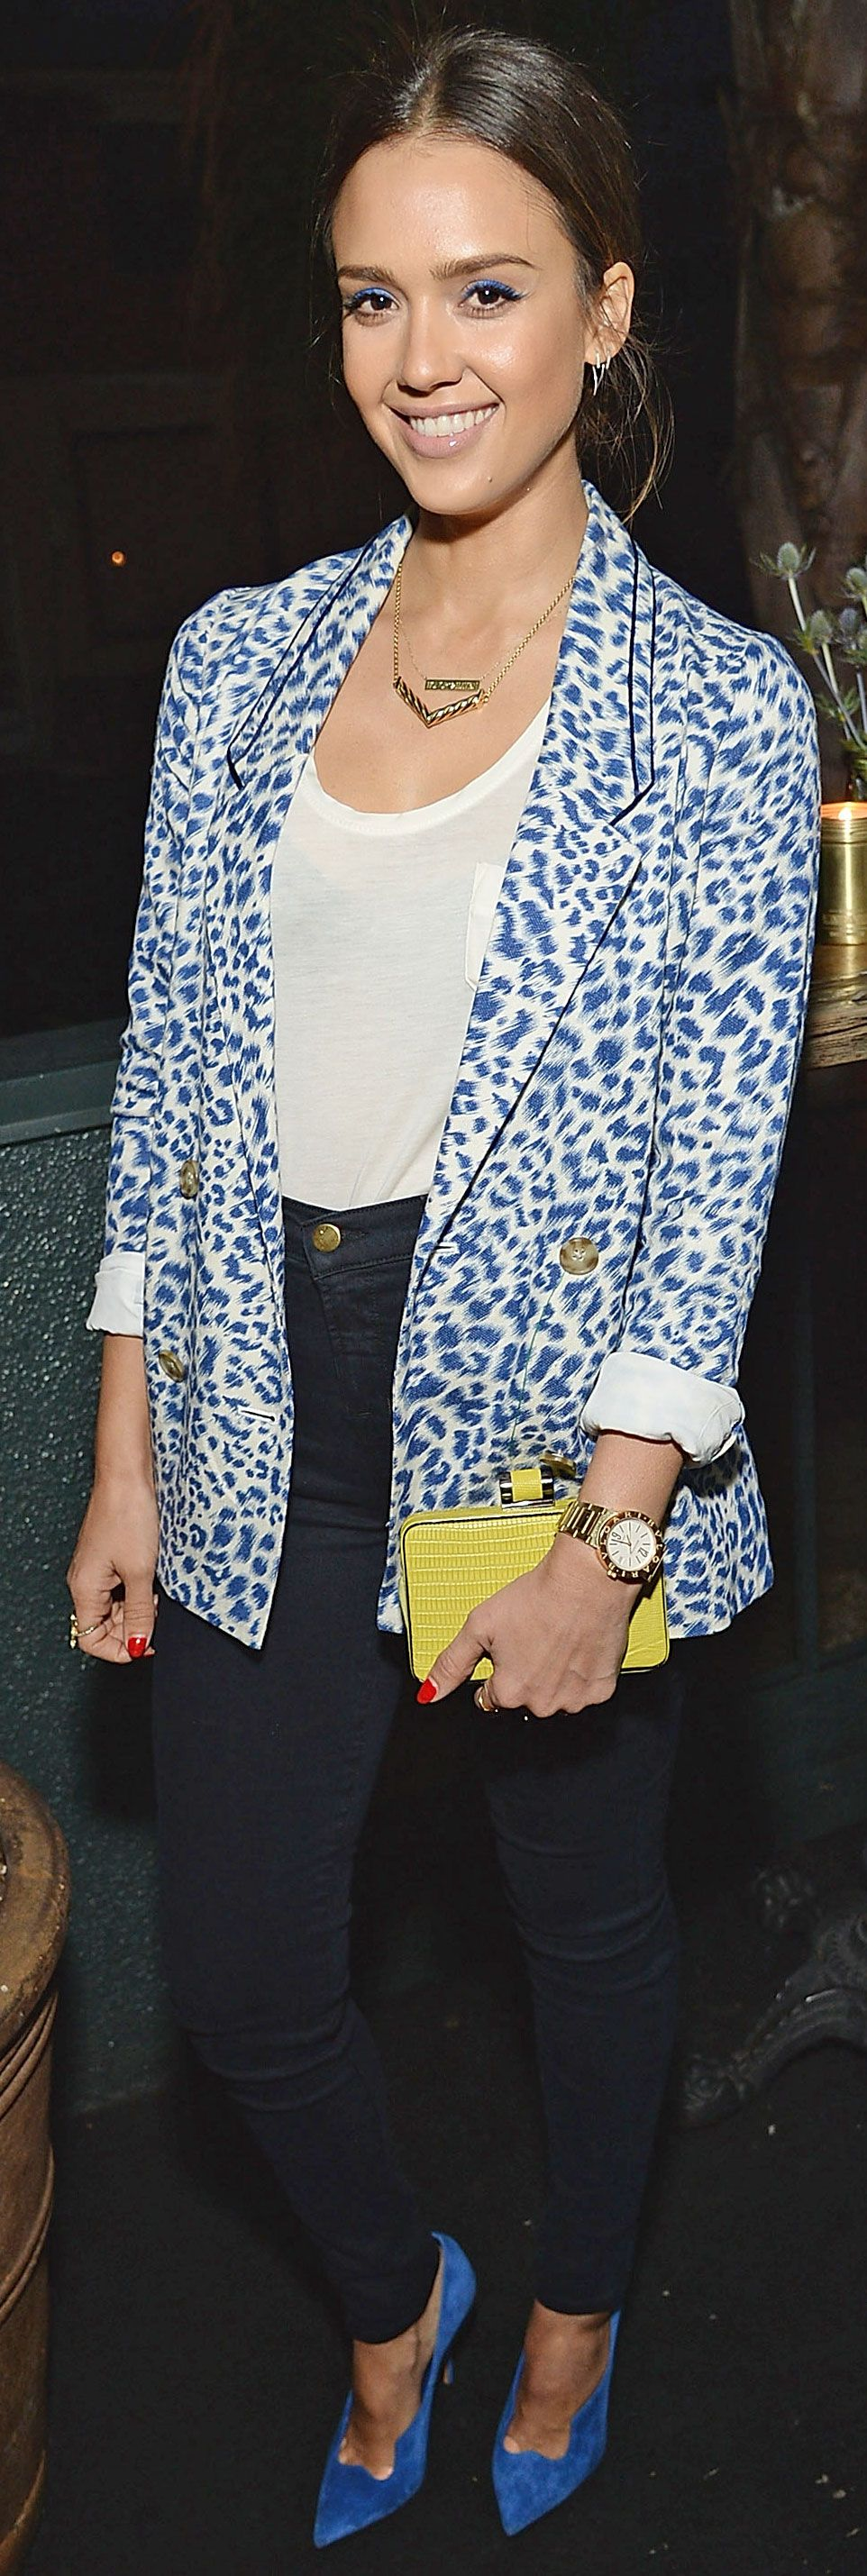 Jessica Alba outfits print with the perfect pop of color